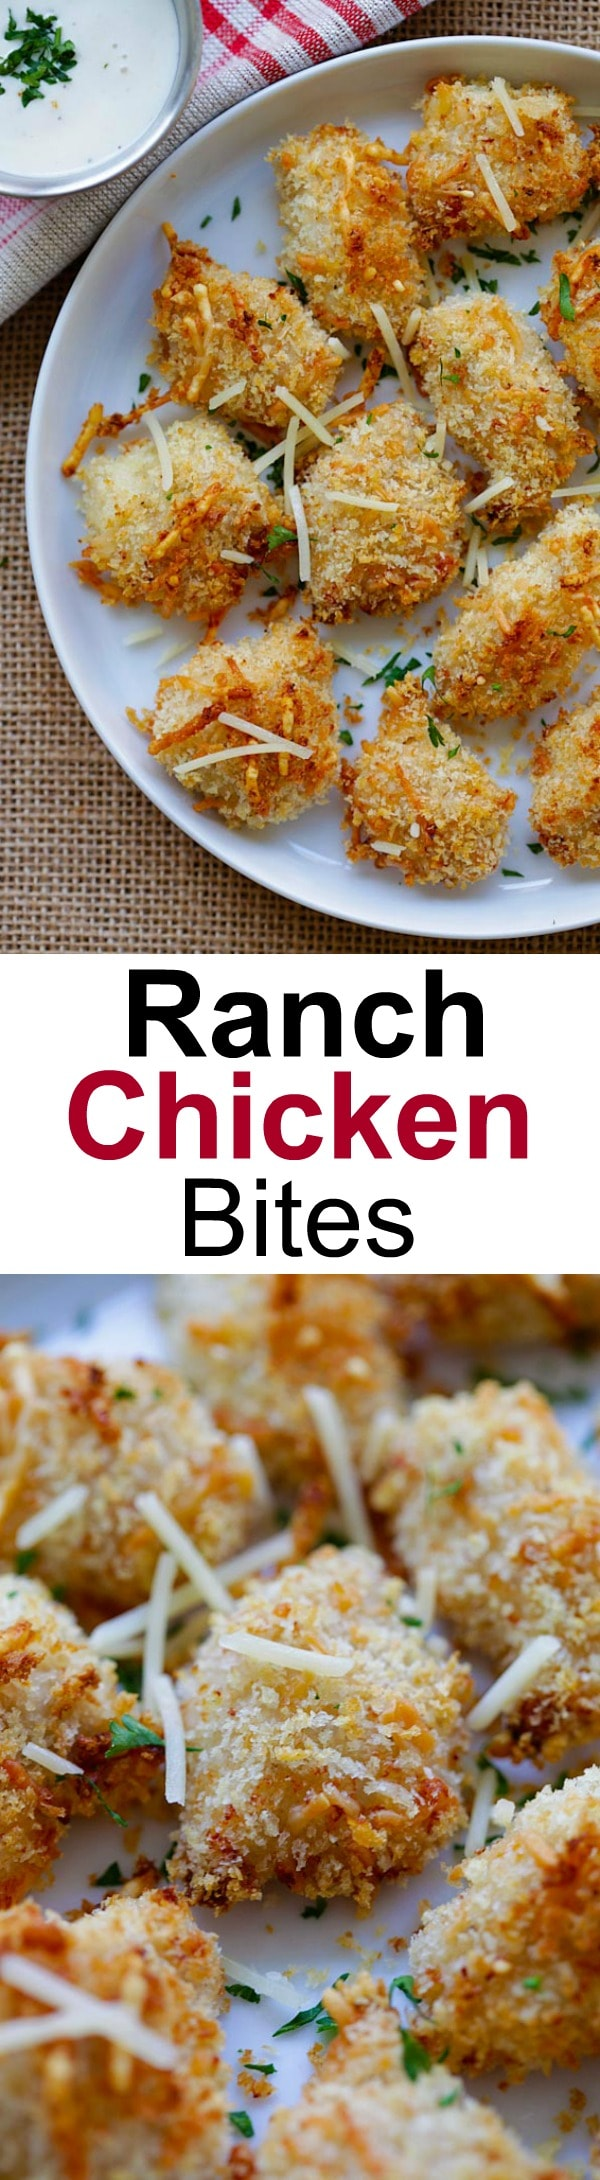 Ranch Chicken Bites – easy chicken nuggets recipe with ranch dressing, panko and Parmesan cheese. Homemade, crispy, moist and so good!   rasamalaysia.com